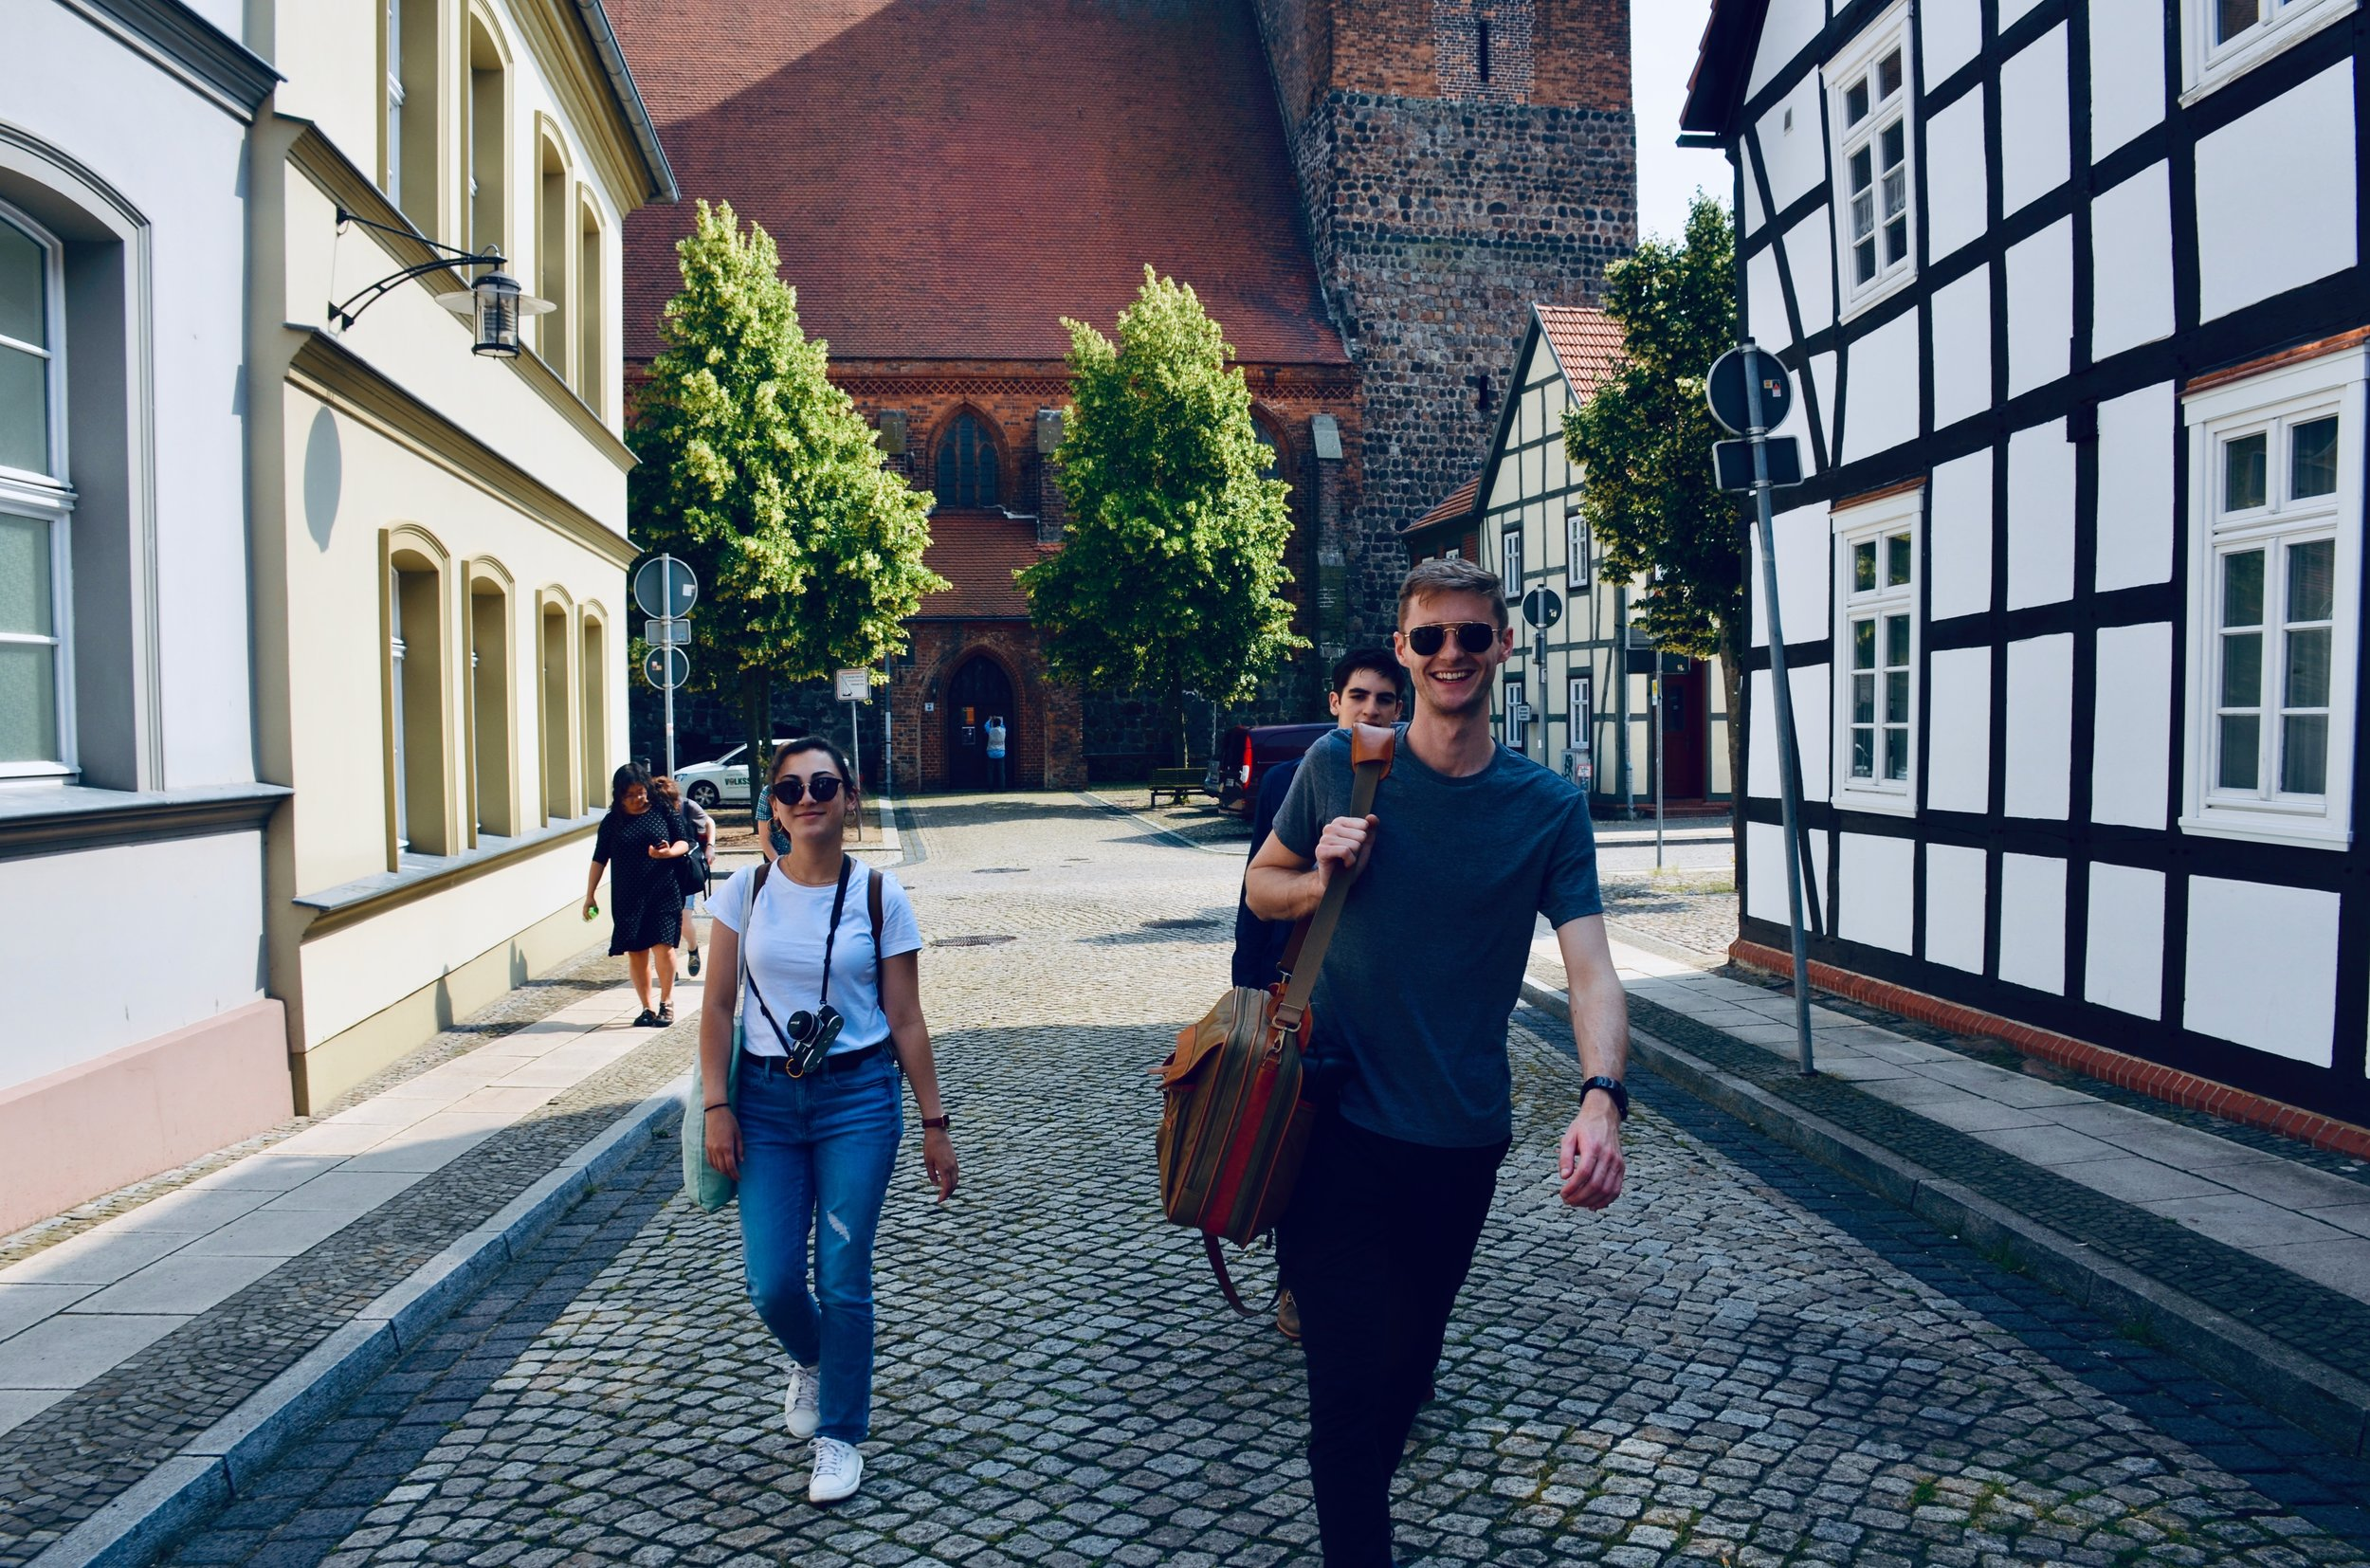 Meg Cutting and Evan Currie walk through Osterburg, Germany.